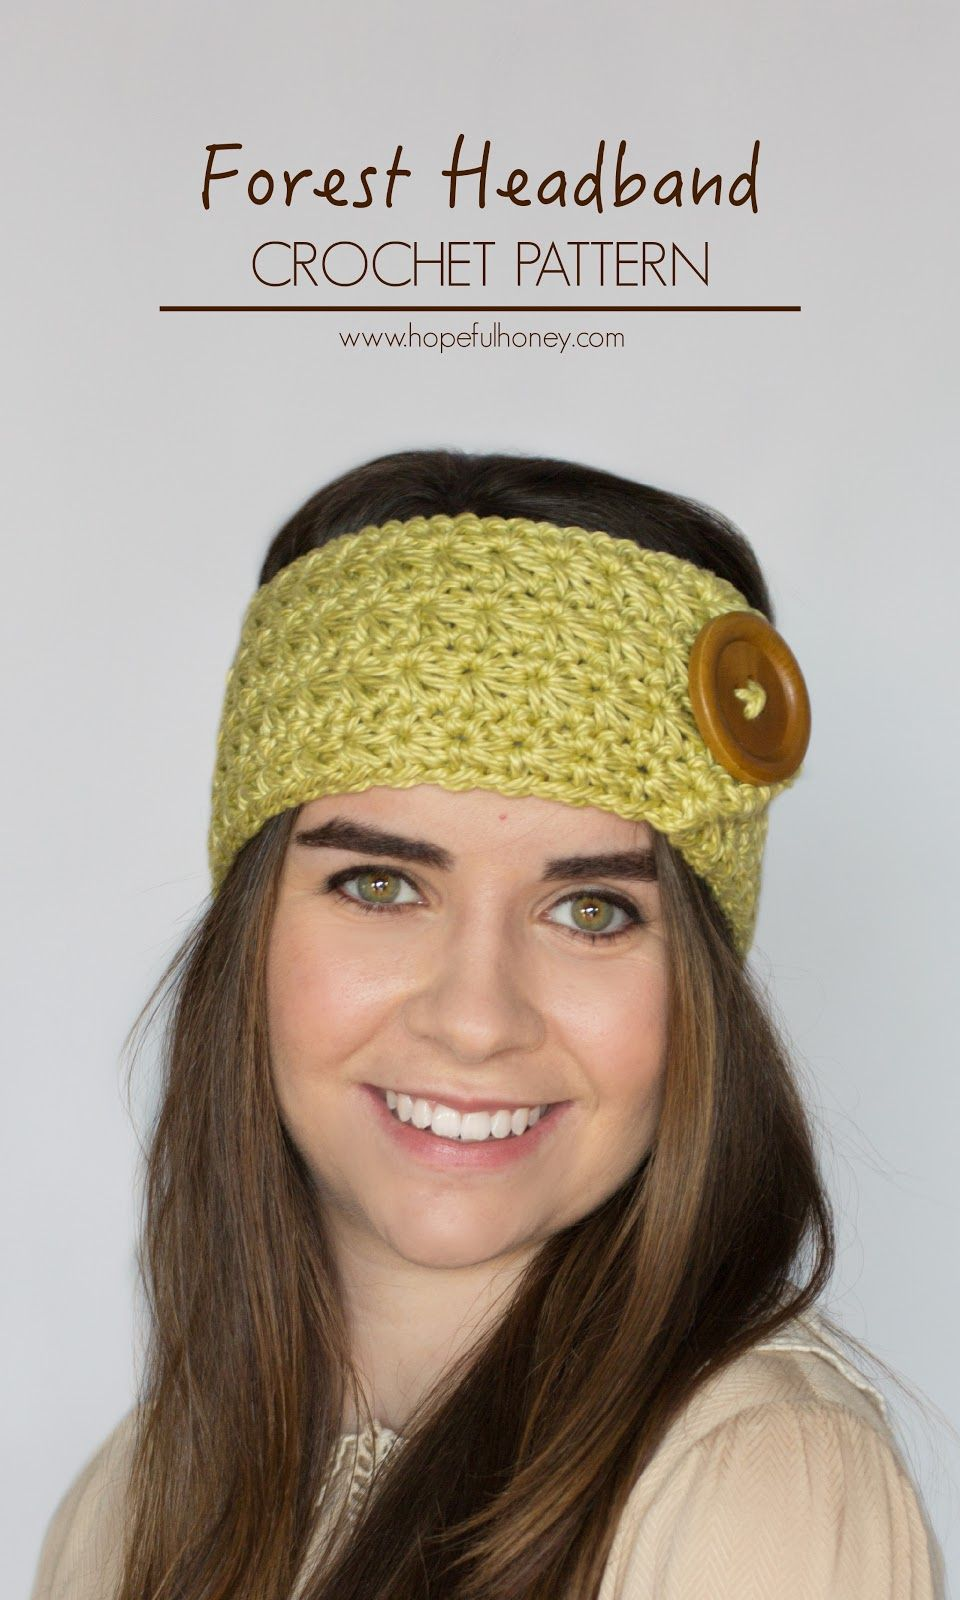 Enchanted Forest Headband Crochet Pattern | Free crochet, Enchanted ...